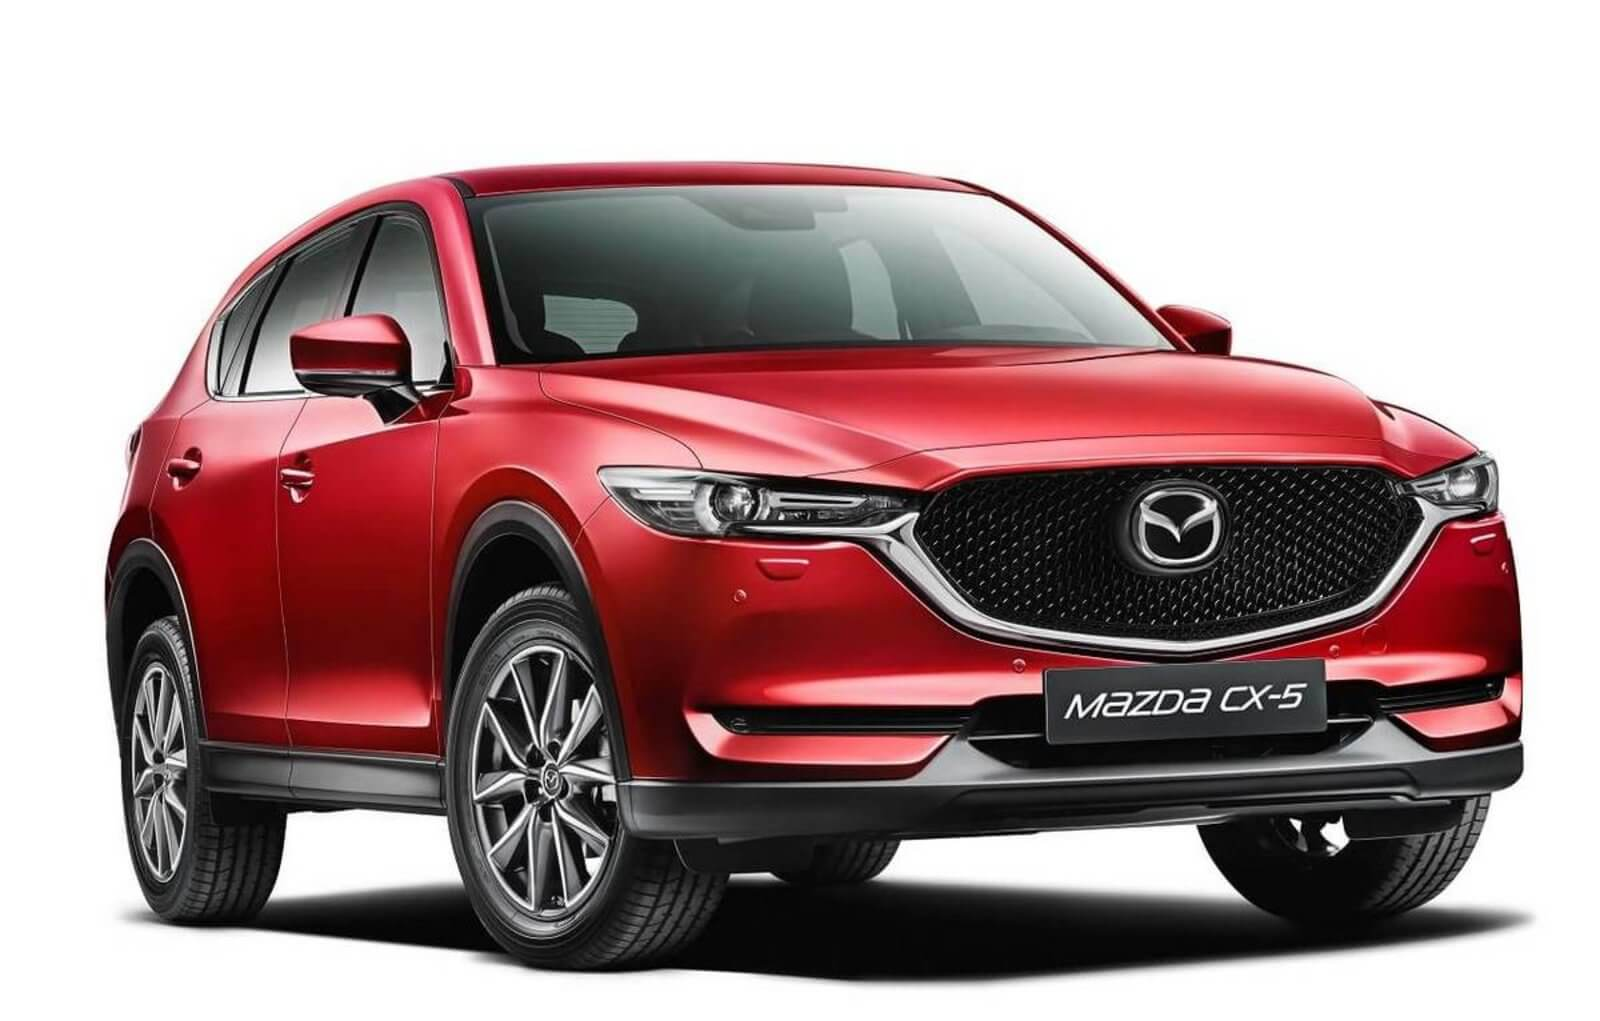 mazda cx 5 skyactiv g 165 prime line leasing f r 140 euro. Black Bedroom Furniture Sets. Home Design Ideas